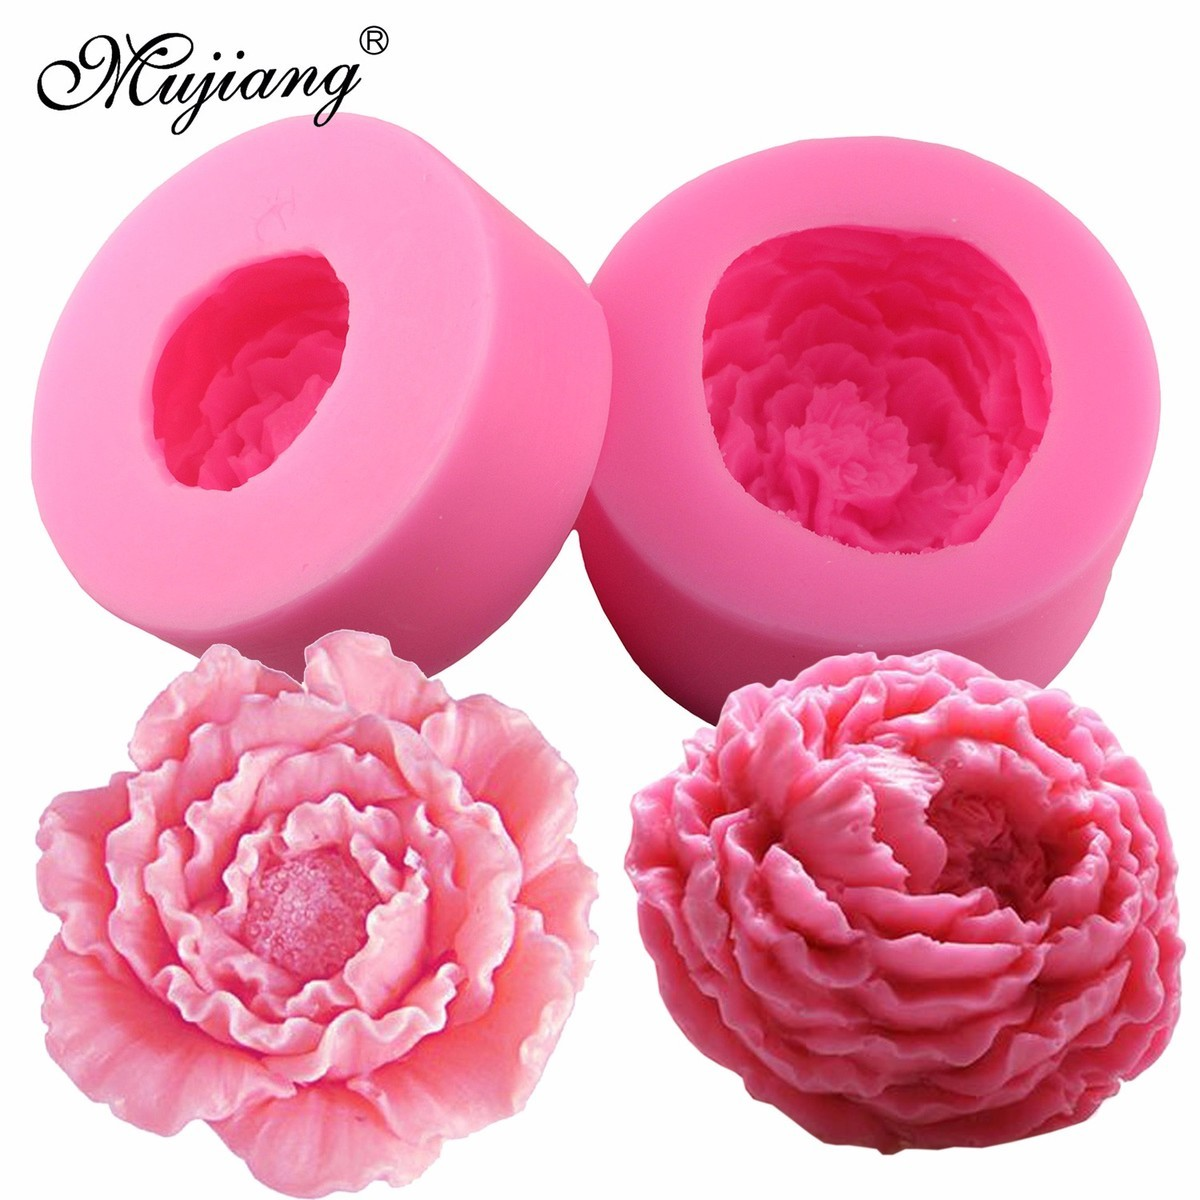 3D Silicone Candle Molds Peony Flower Fimo Clay Soap Mold Fondant Chocolate Cake Baking Moulds Cake Decorating Tools